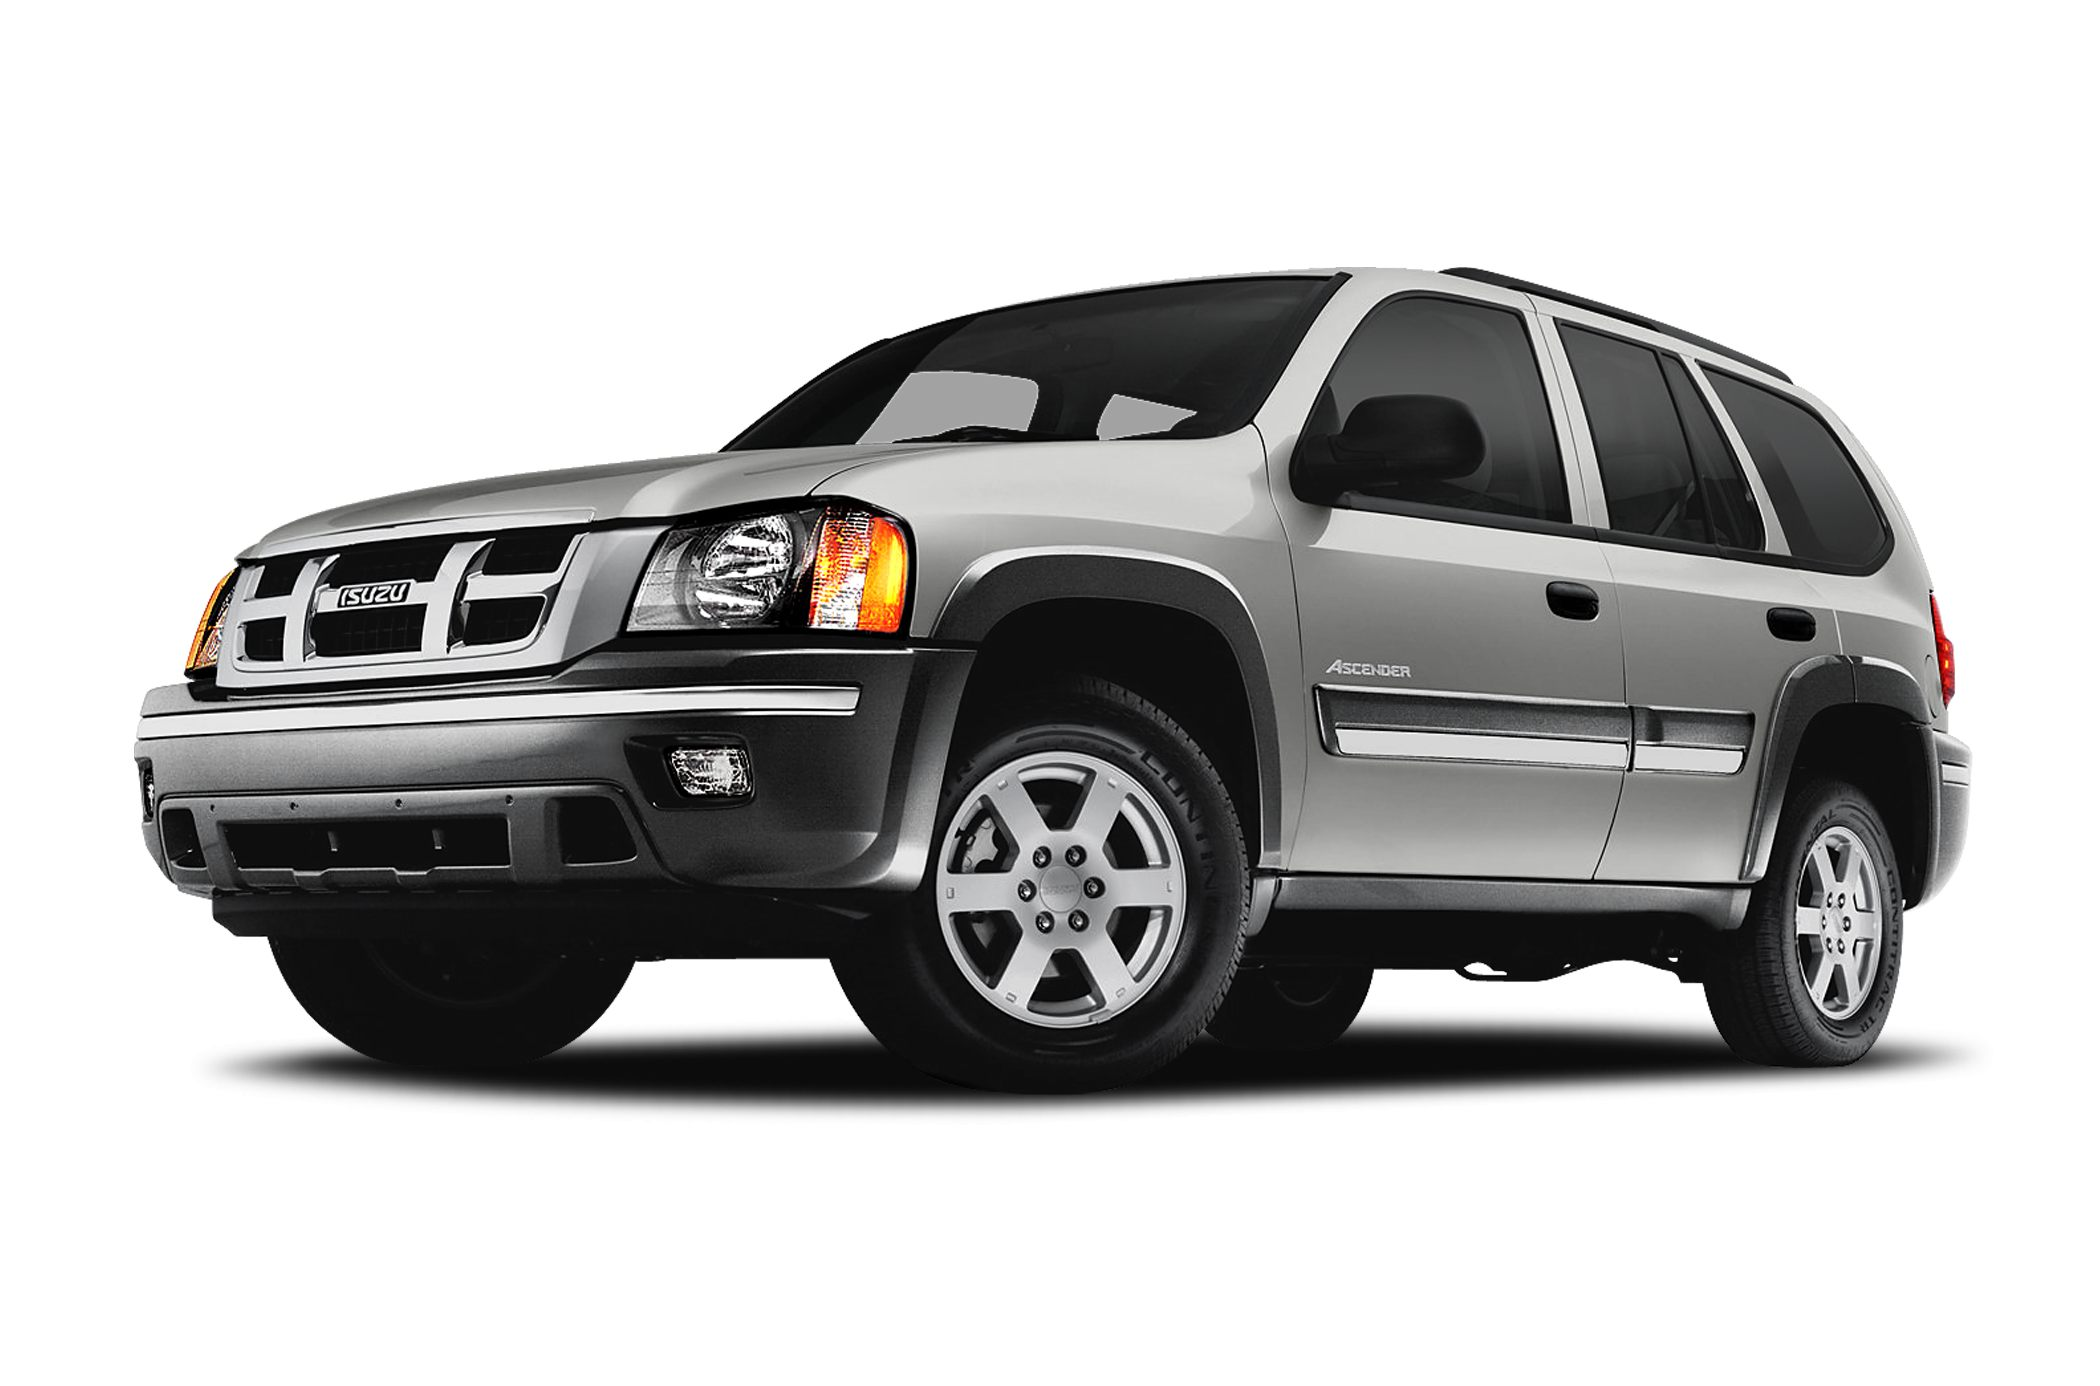 2007 Isuzu Ascender S SUV for sale in Columbia for $7,995 with 120,241 miles.